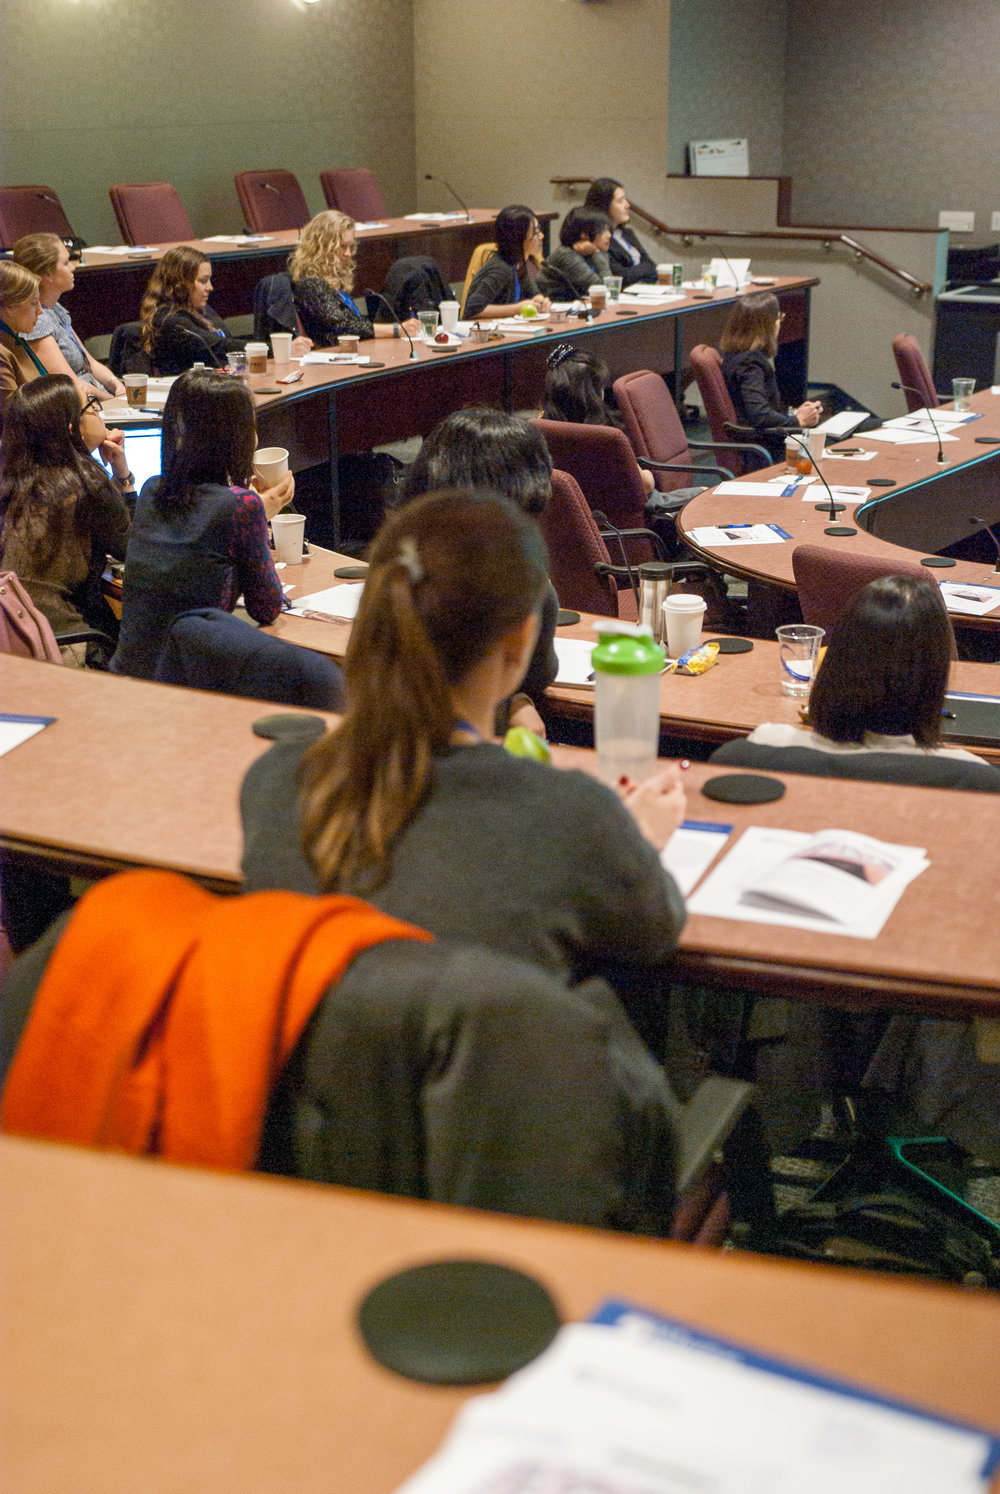 attendees during the keynote presentations